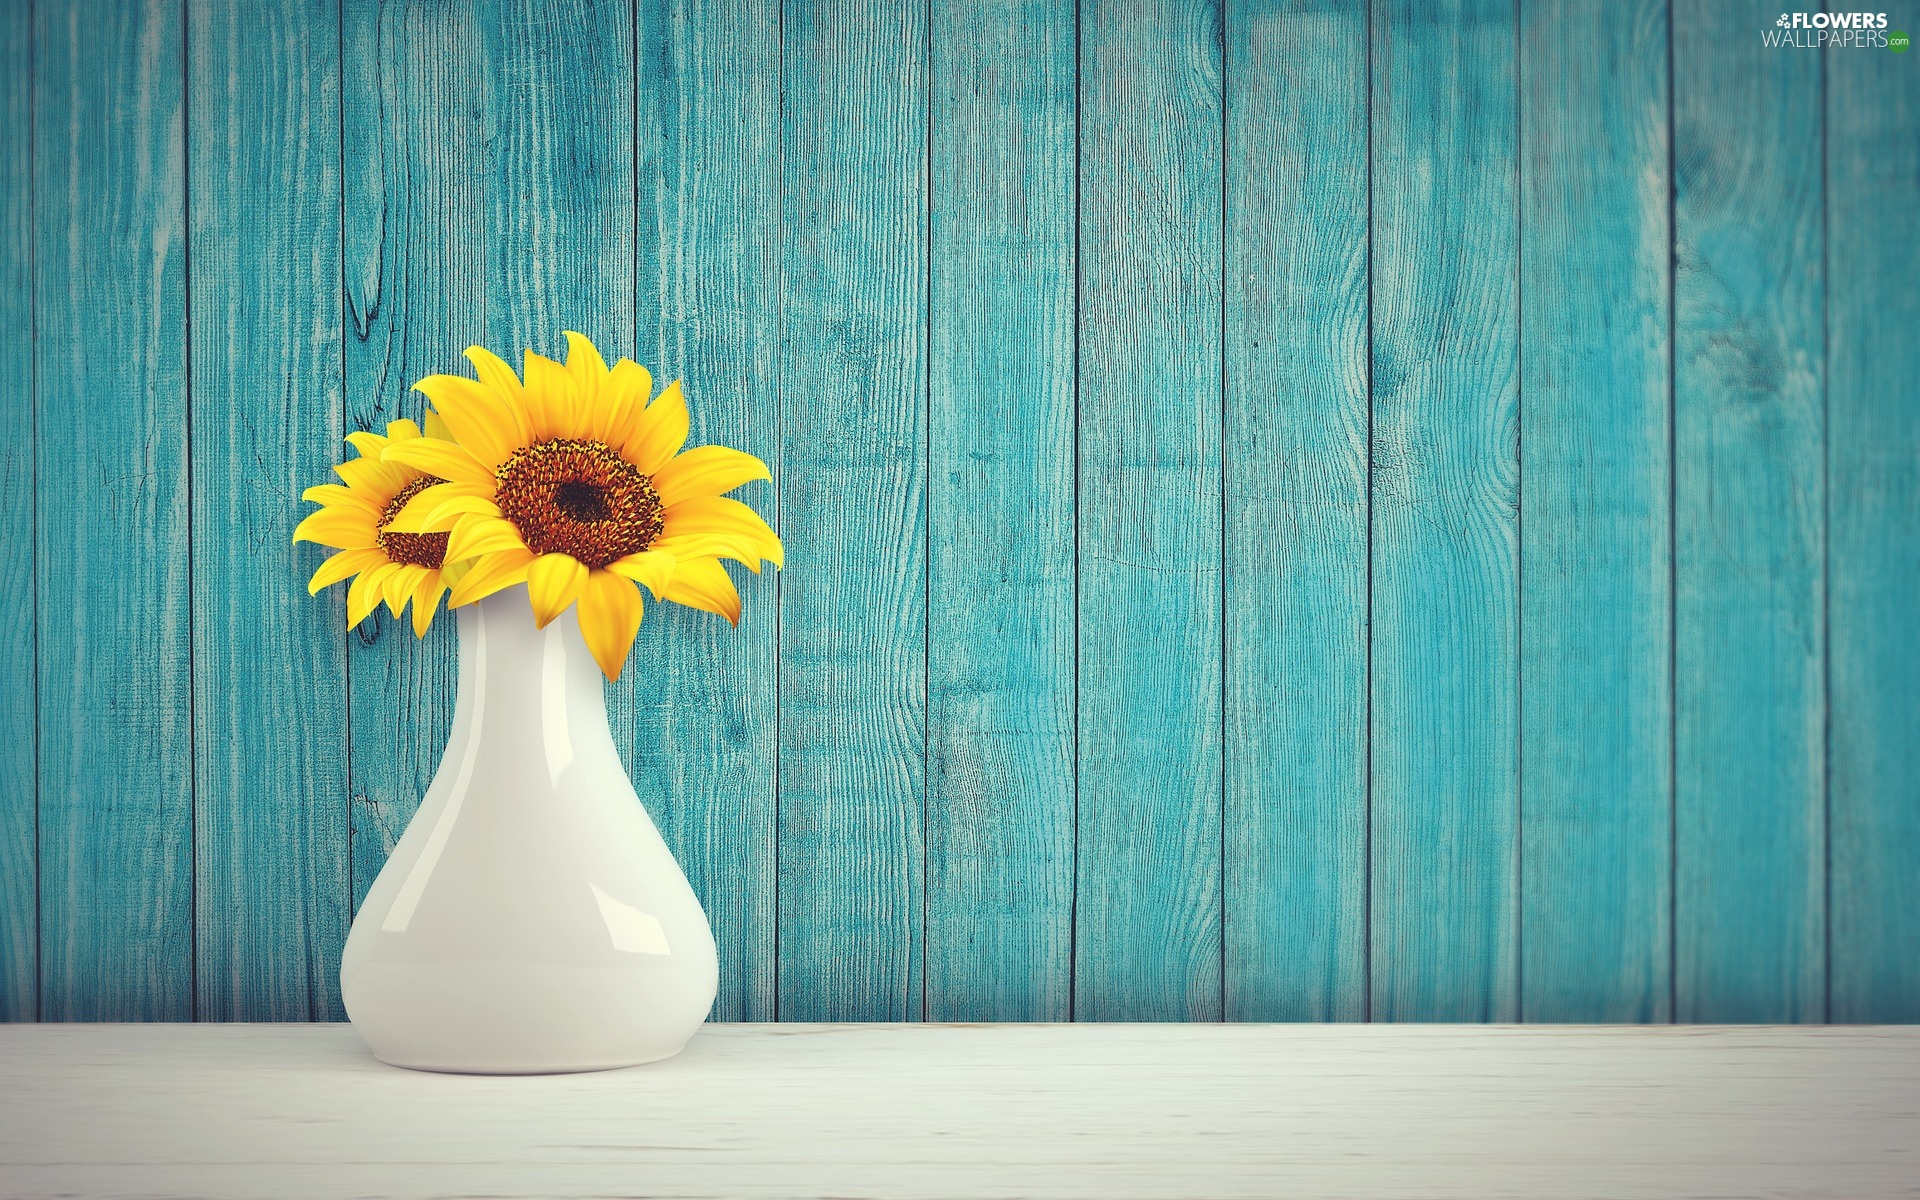 Blue, boarding, Two cars, decorative Sunflowers, vase